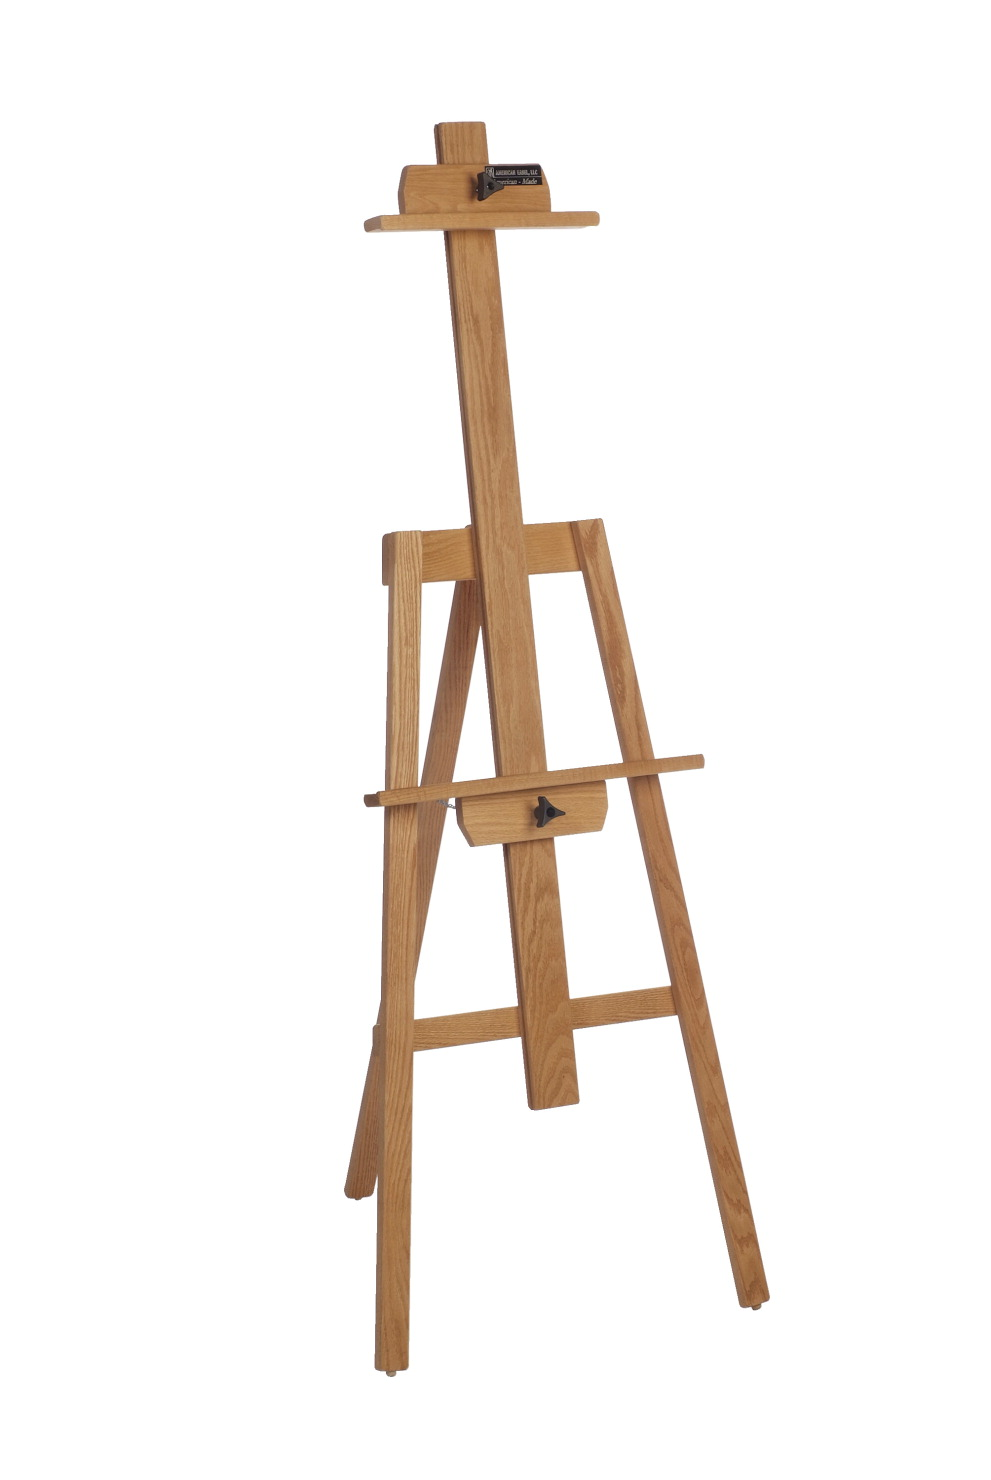 American Easel Yahzi A-Frame Easel, 60 in H, 21 X 20 in Base, Northern Oak, Red, Golden